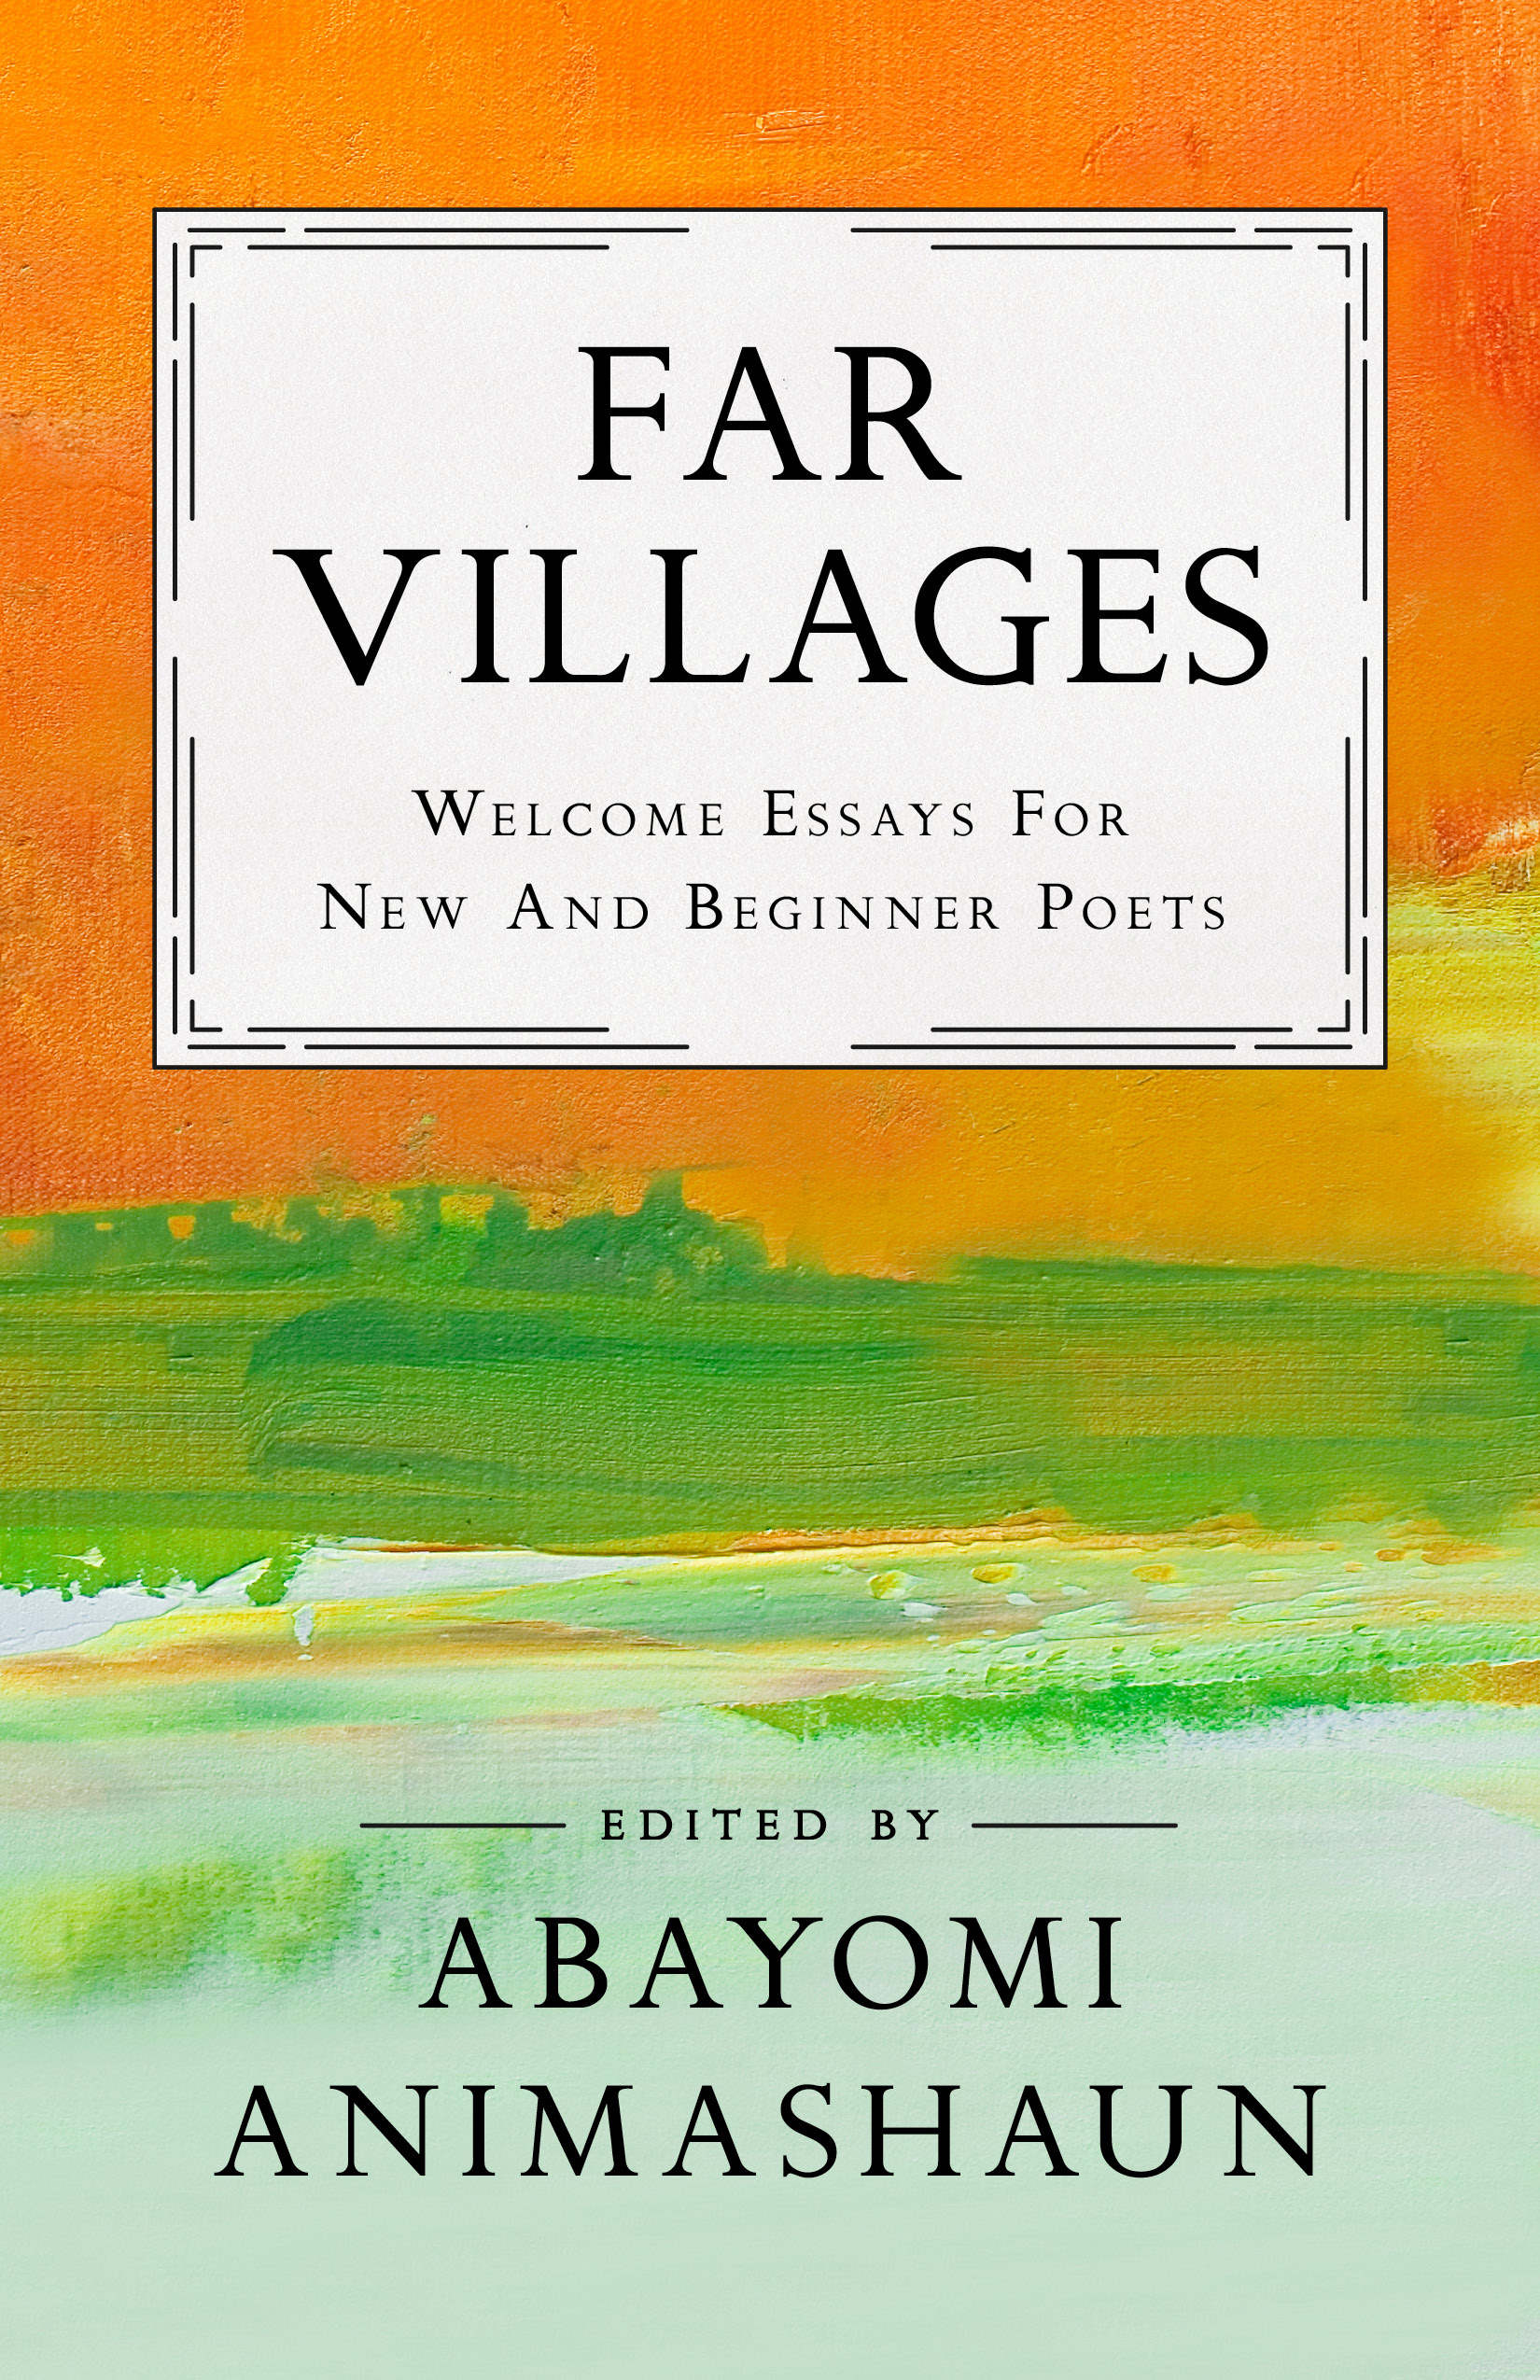 Far Villages: Welcome Essays for New & Beginner Poets